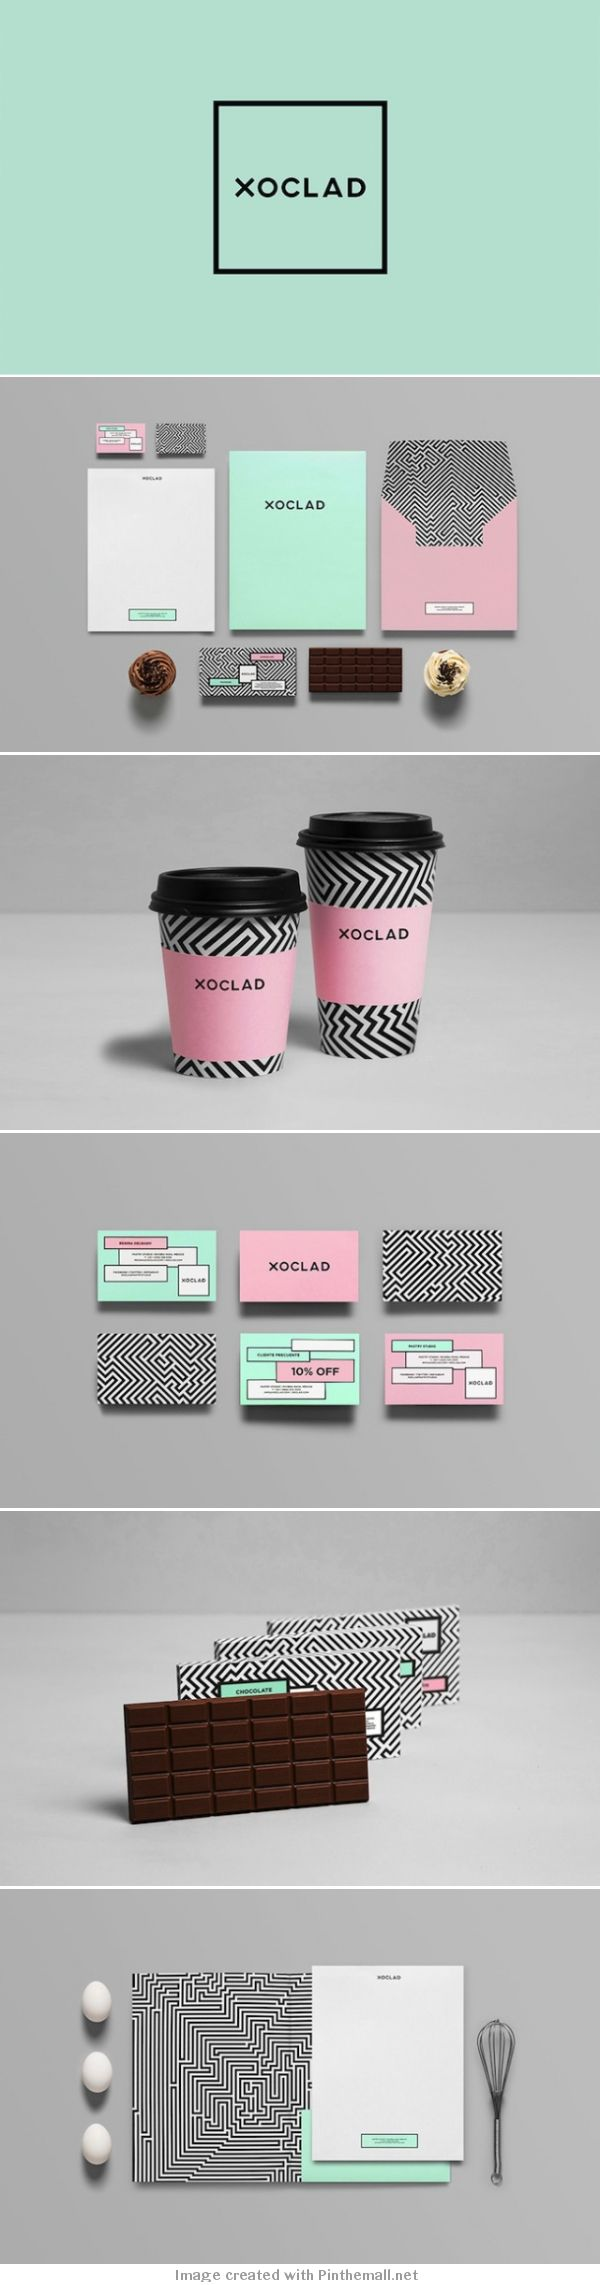 How about this minimalist branding with fun color palette? We love this! #minimalist #colorpalette